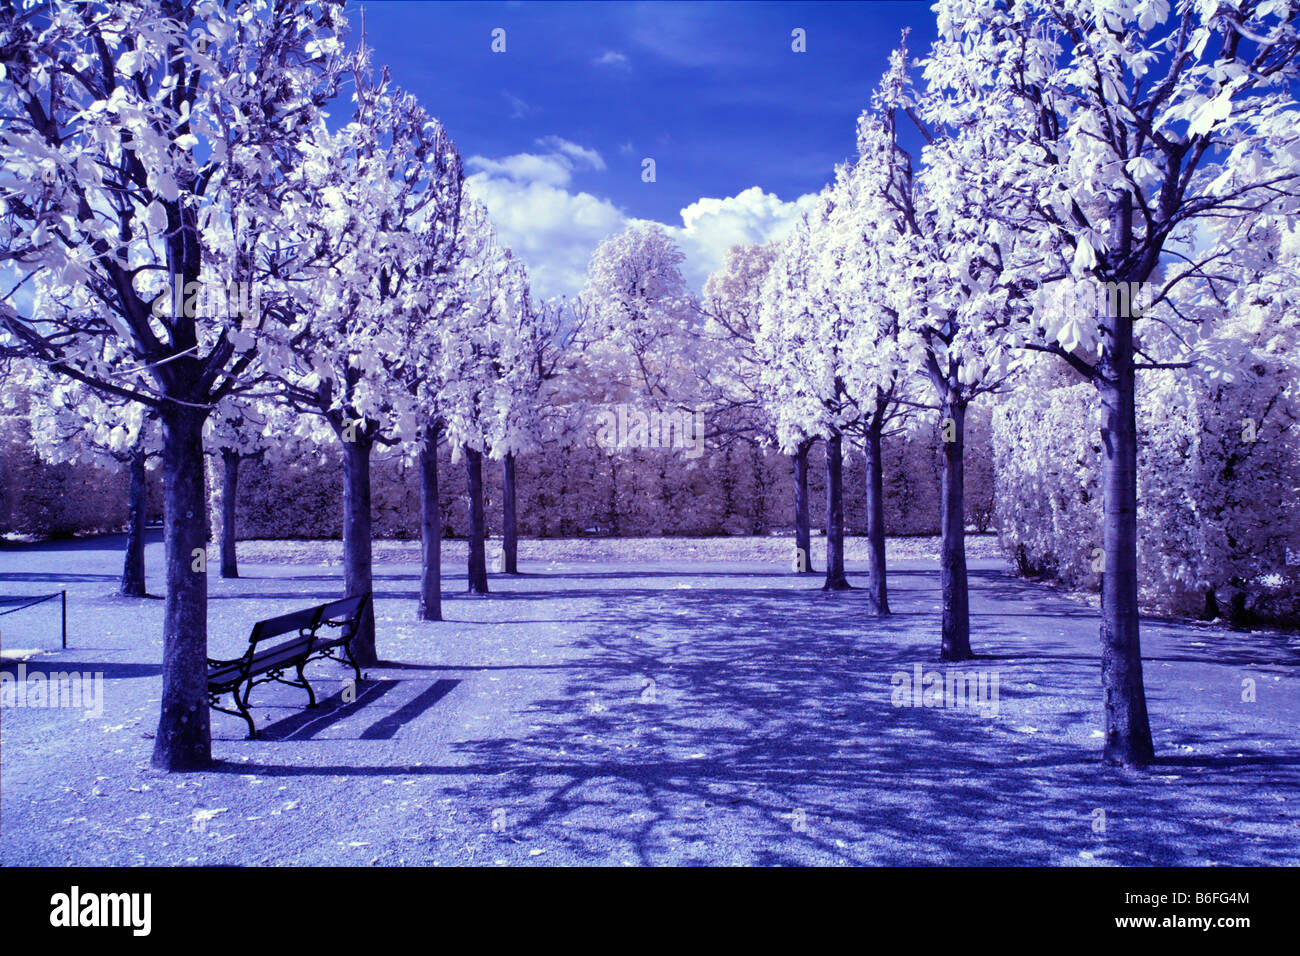 Schoenbrunn Palace gardens, infra-red colour photograph, Vienna, Austria, Europe - Stock Image